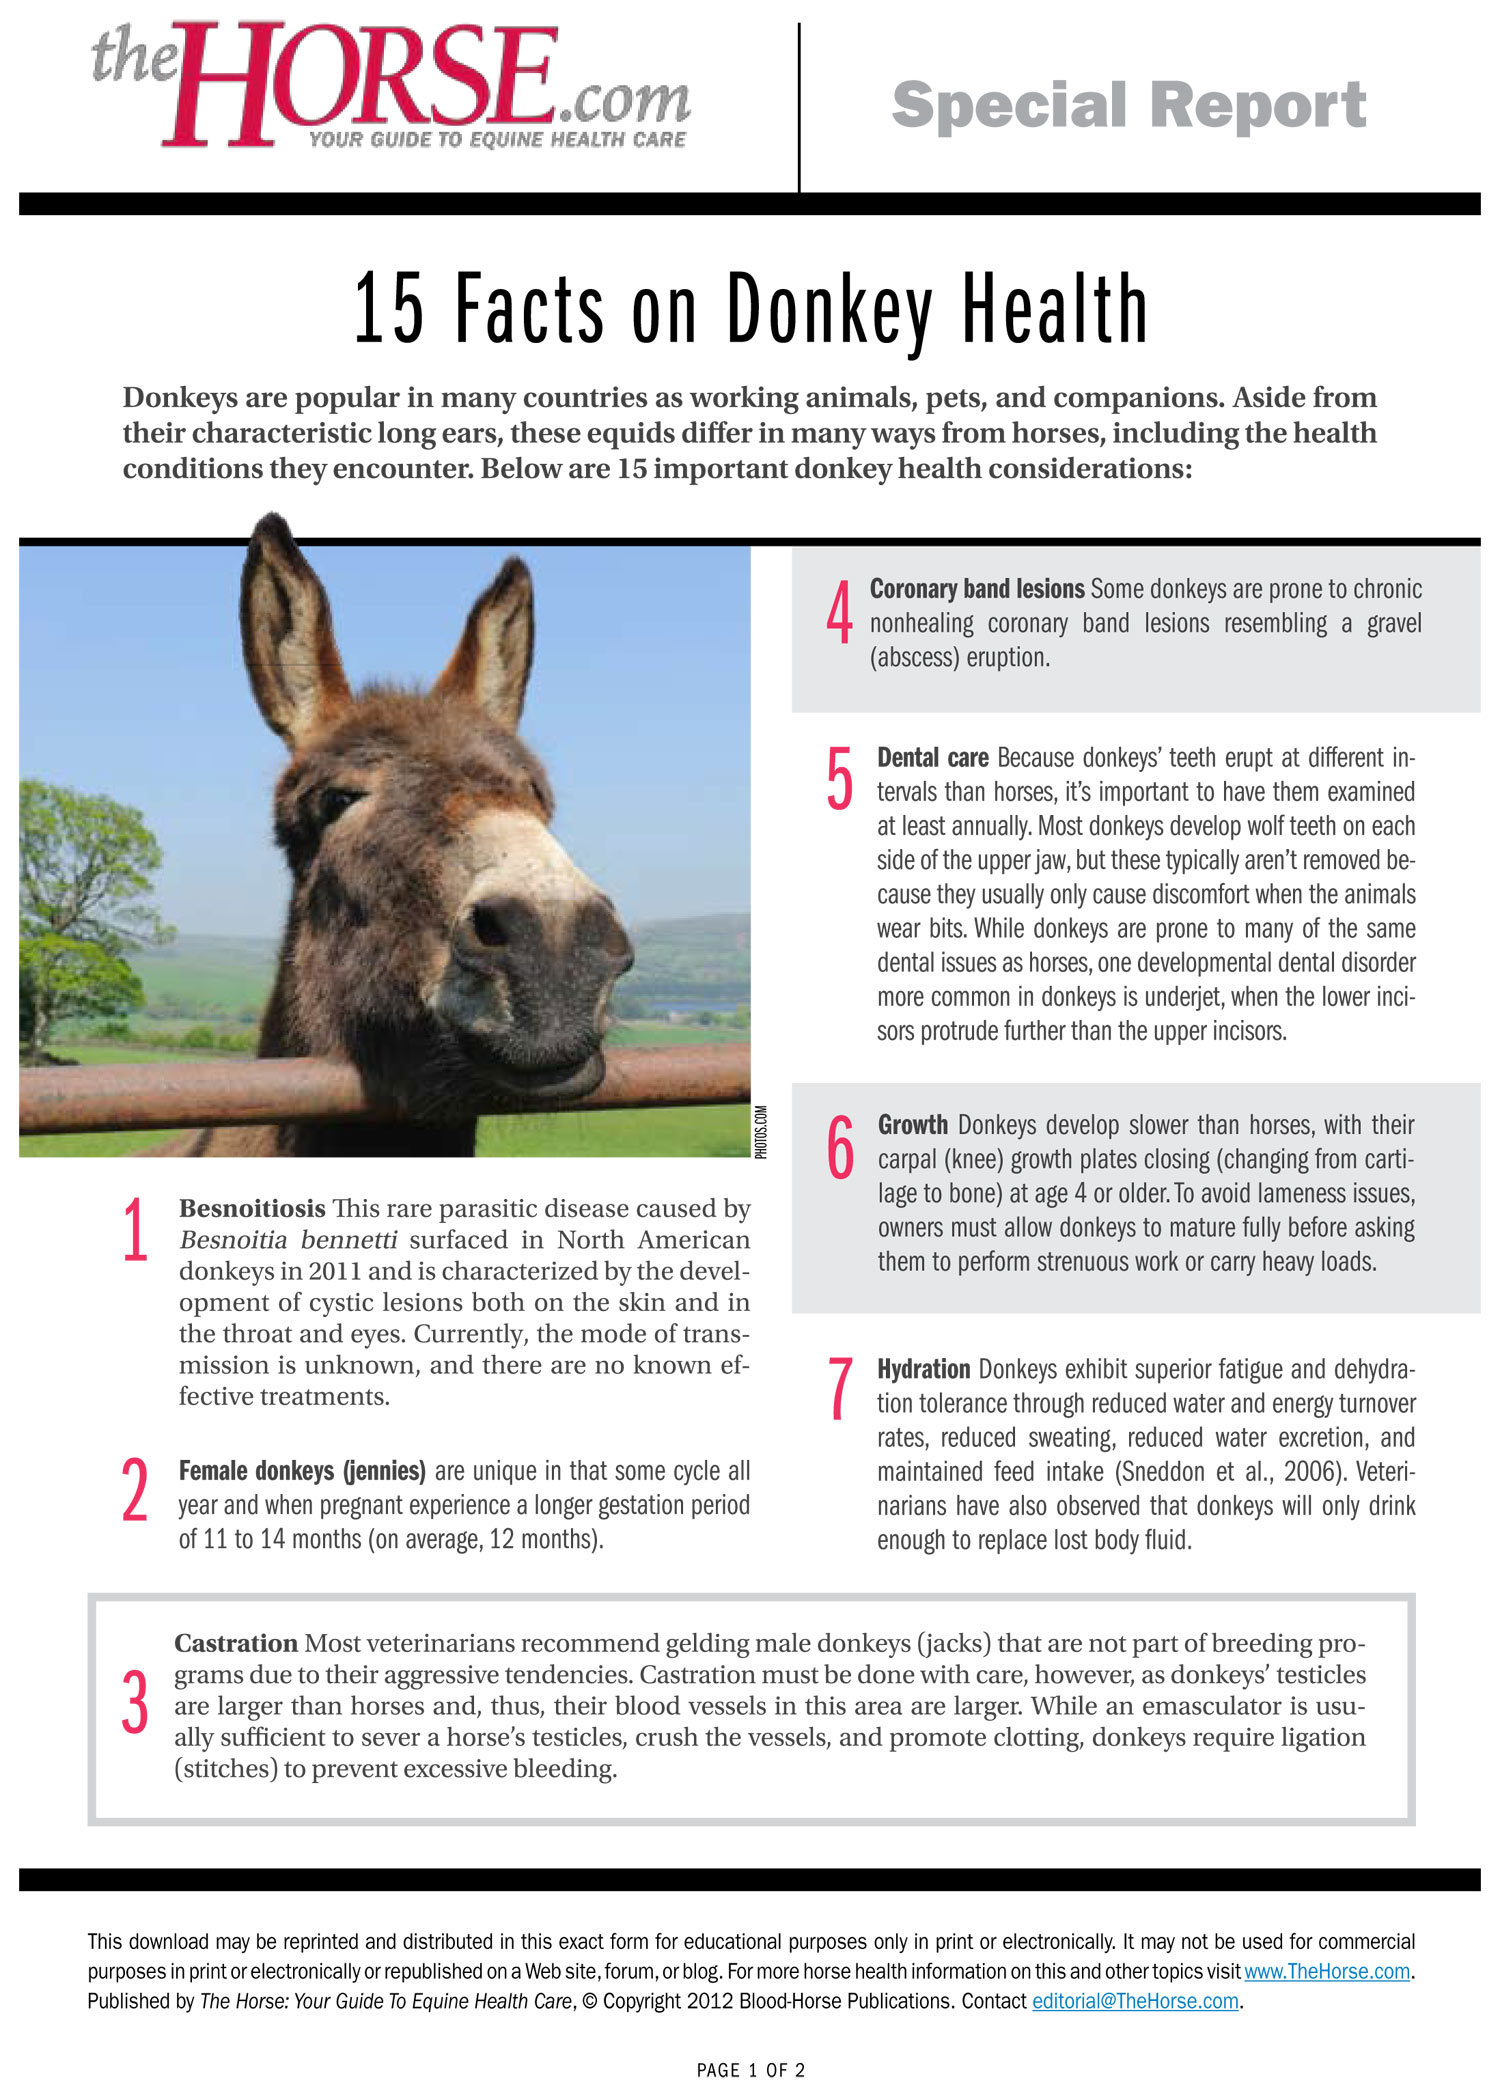 15 Facts on Donkey Health – The Horse